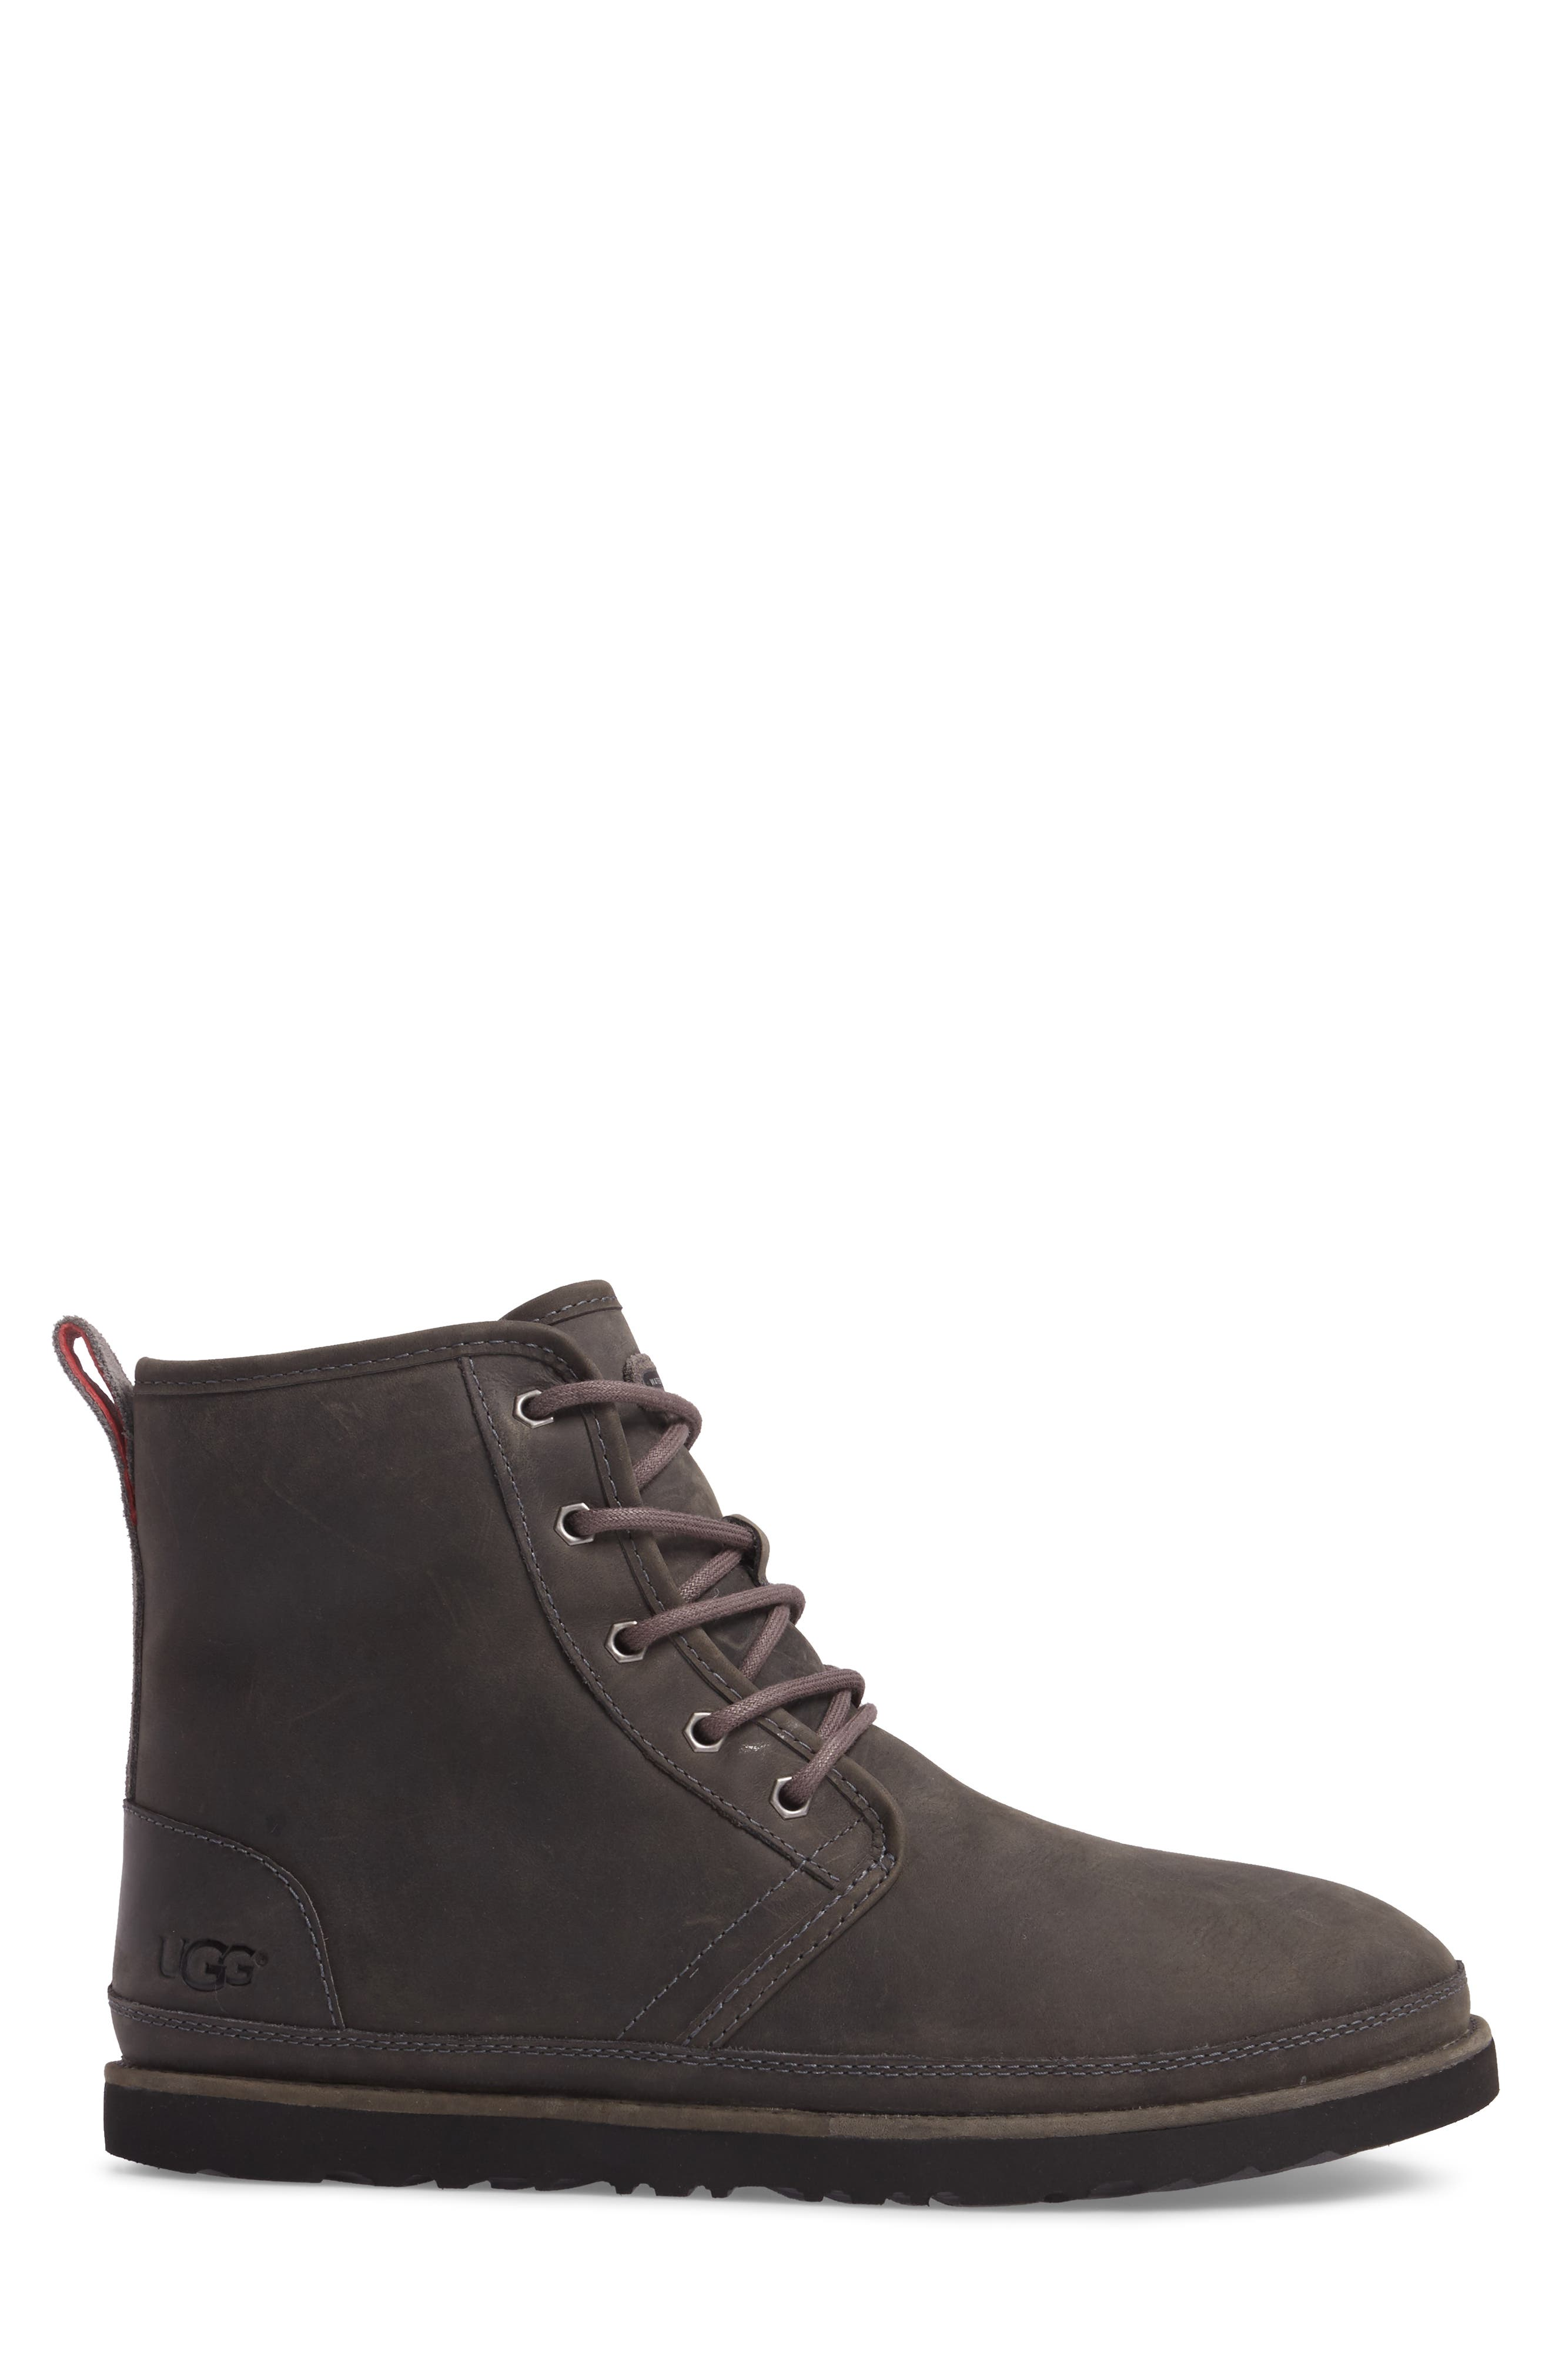 Harkley Plain Toe Boot,                             Alternate thumbnail 3, color,                             Charcoal